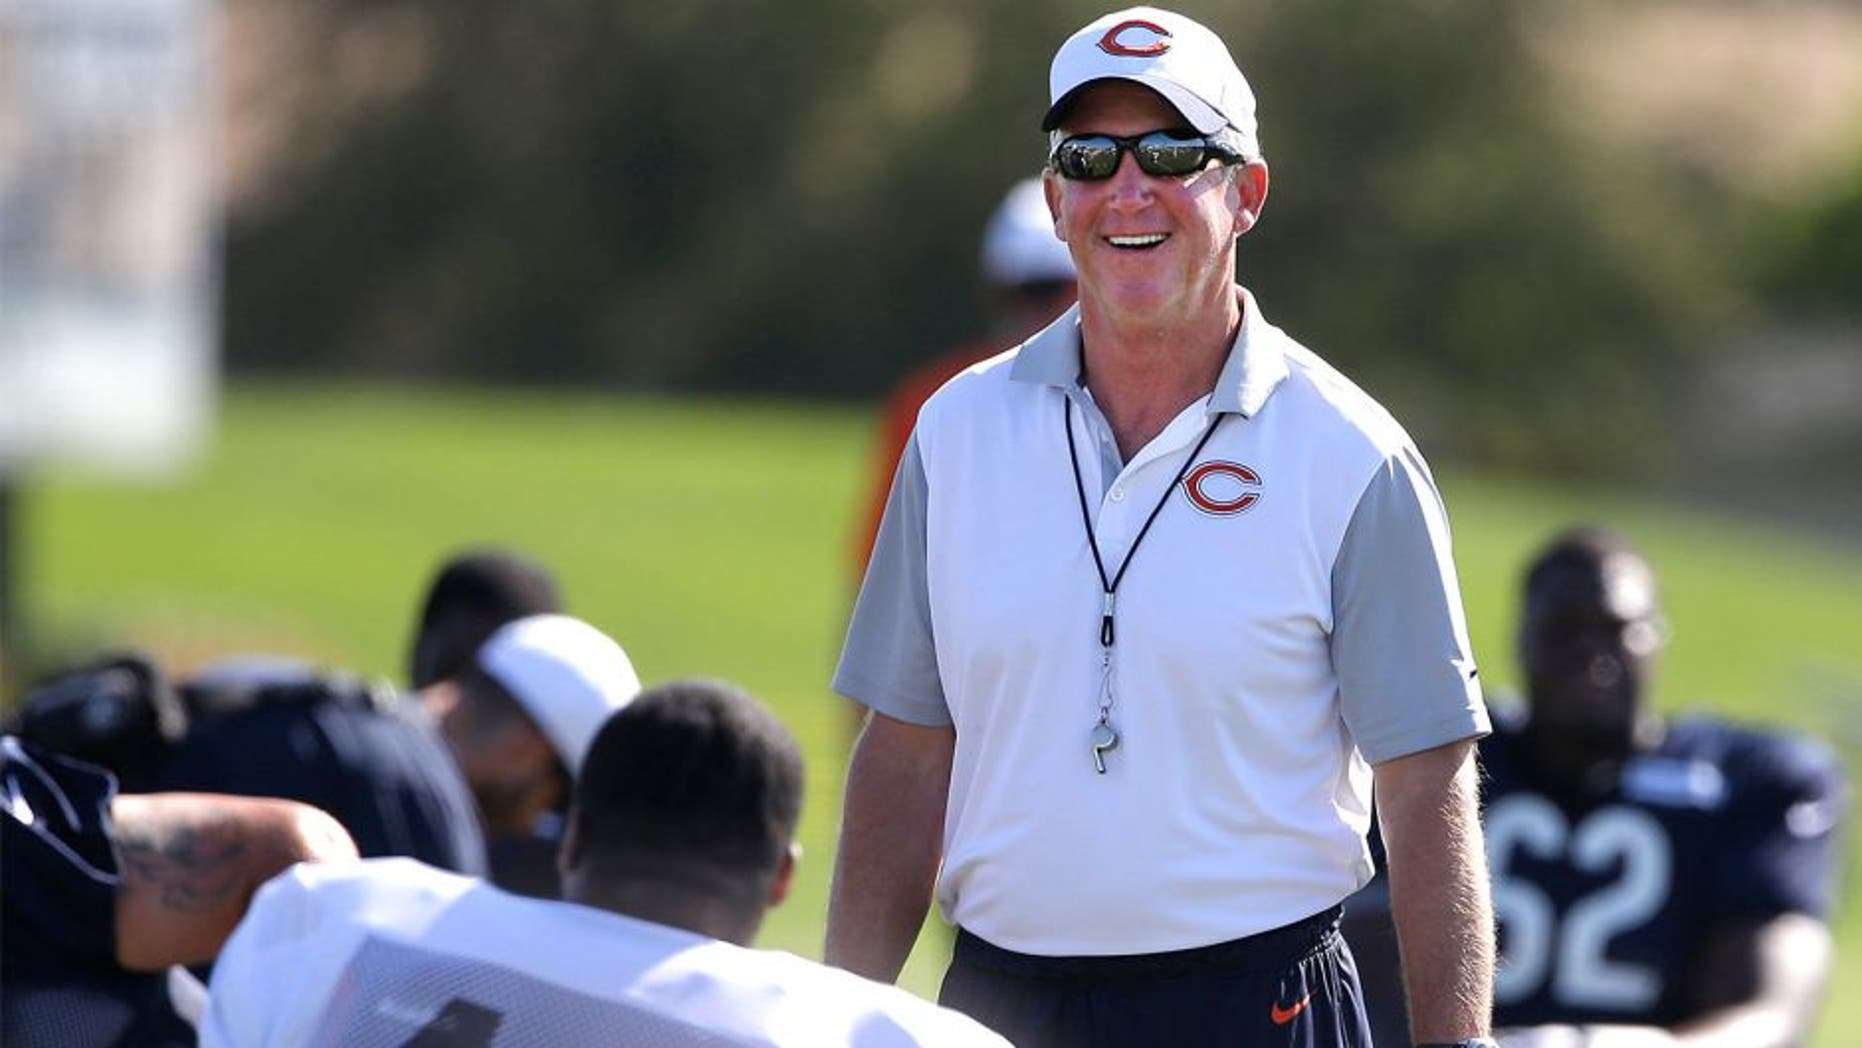 Chicago Bears head coach John Fox smiles as he watches his team during NFL football training camp at Olivet Nazarene University, Saturday, Aug. 1, 2015, in Bourbonnais, Ill. (AP Photo/Nam Y. Huh)